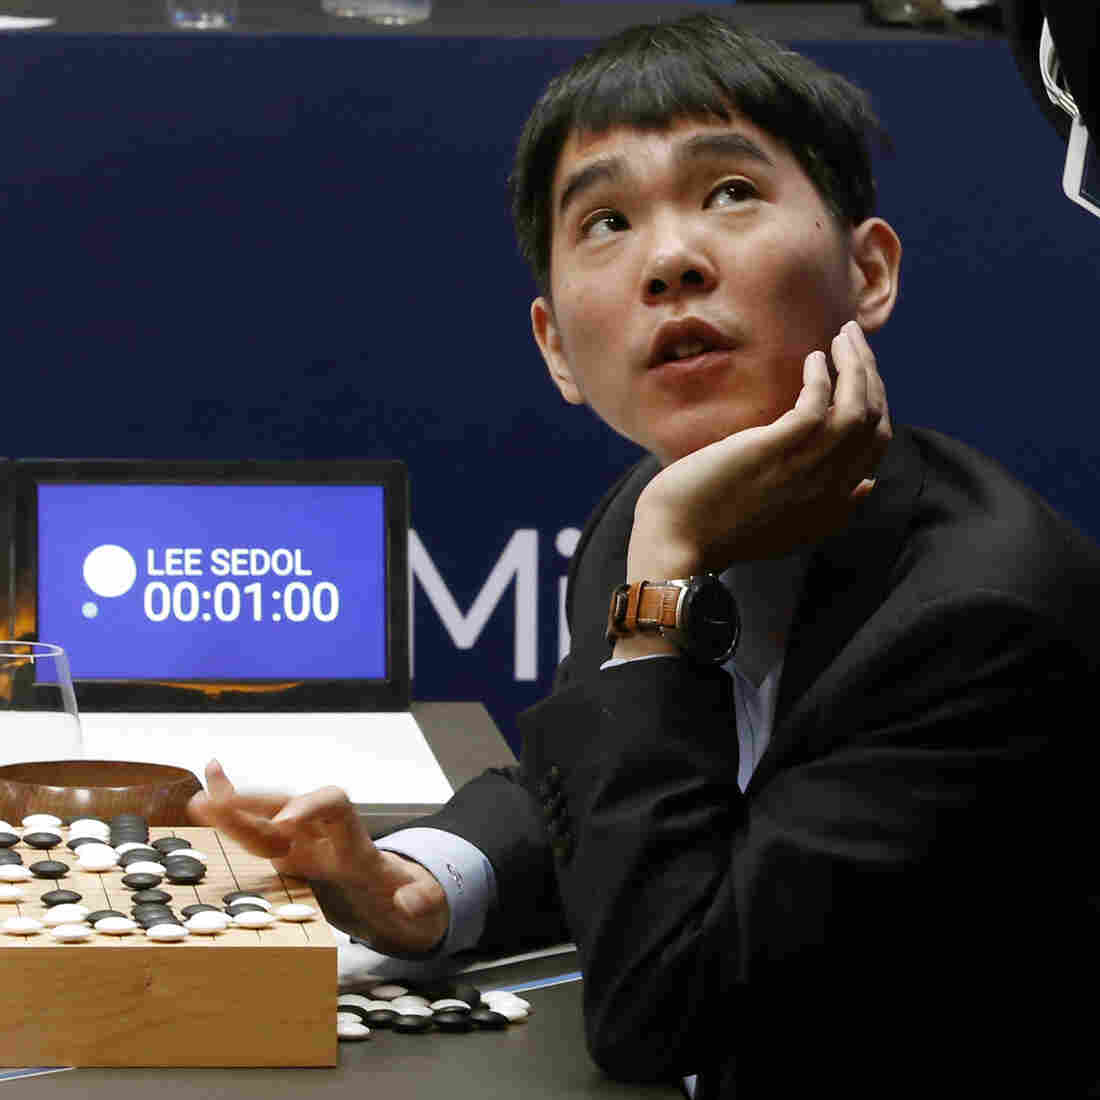 Google A.I. Computer Takes Second Game From Human Champion